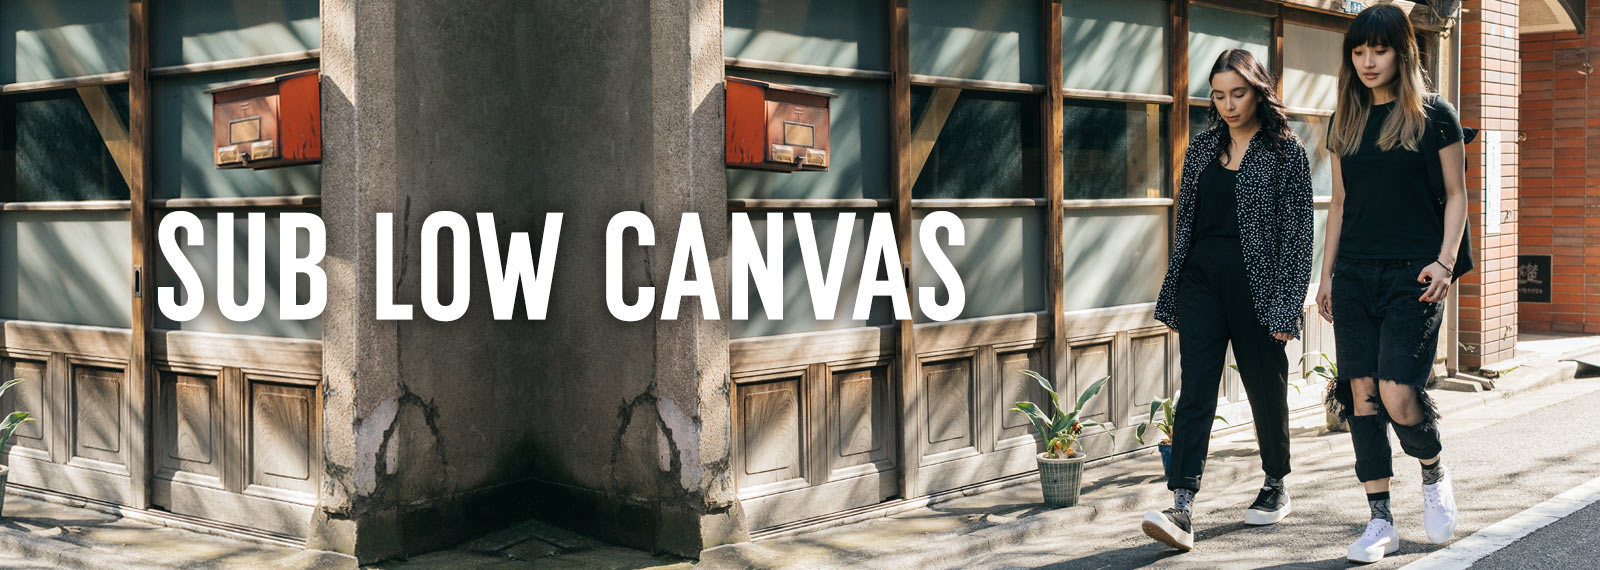 SUB LOW CANVAS